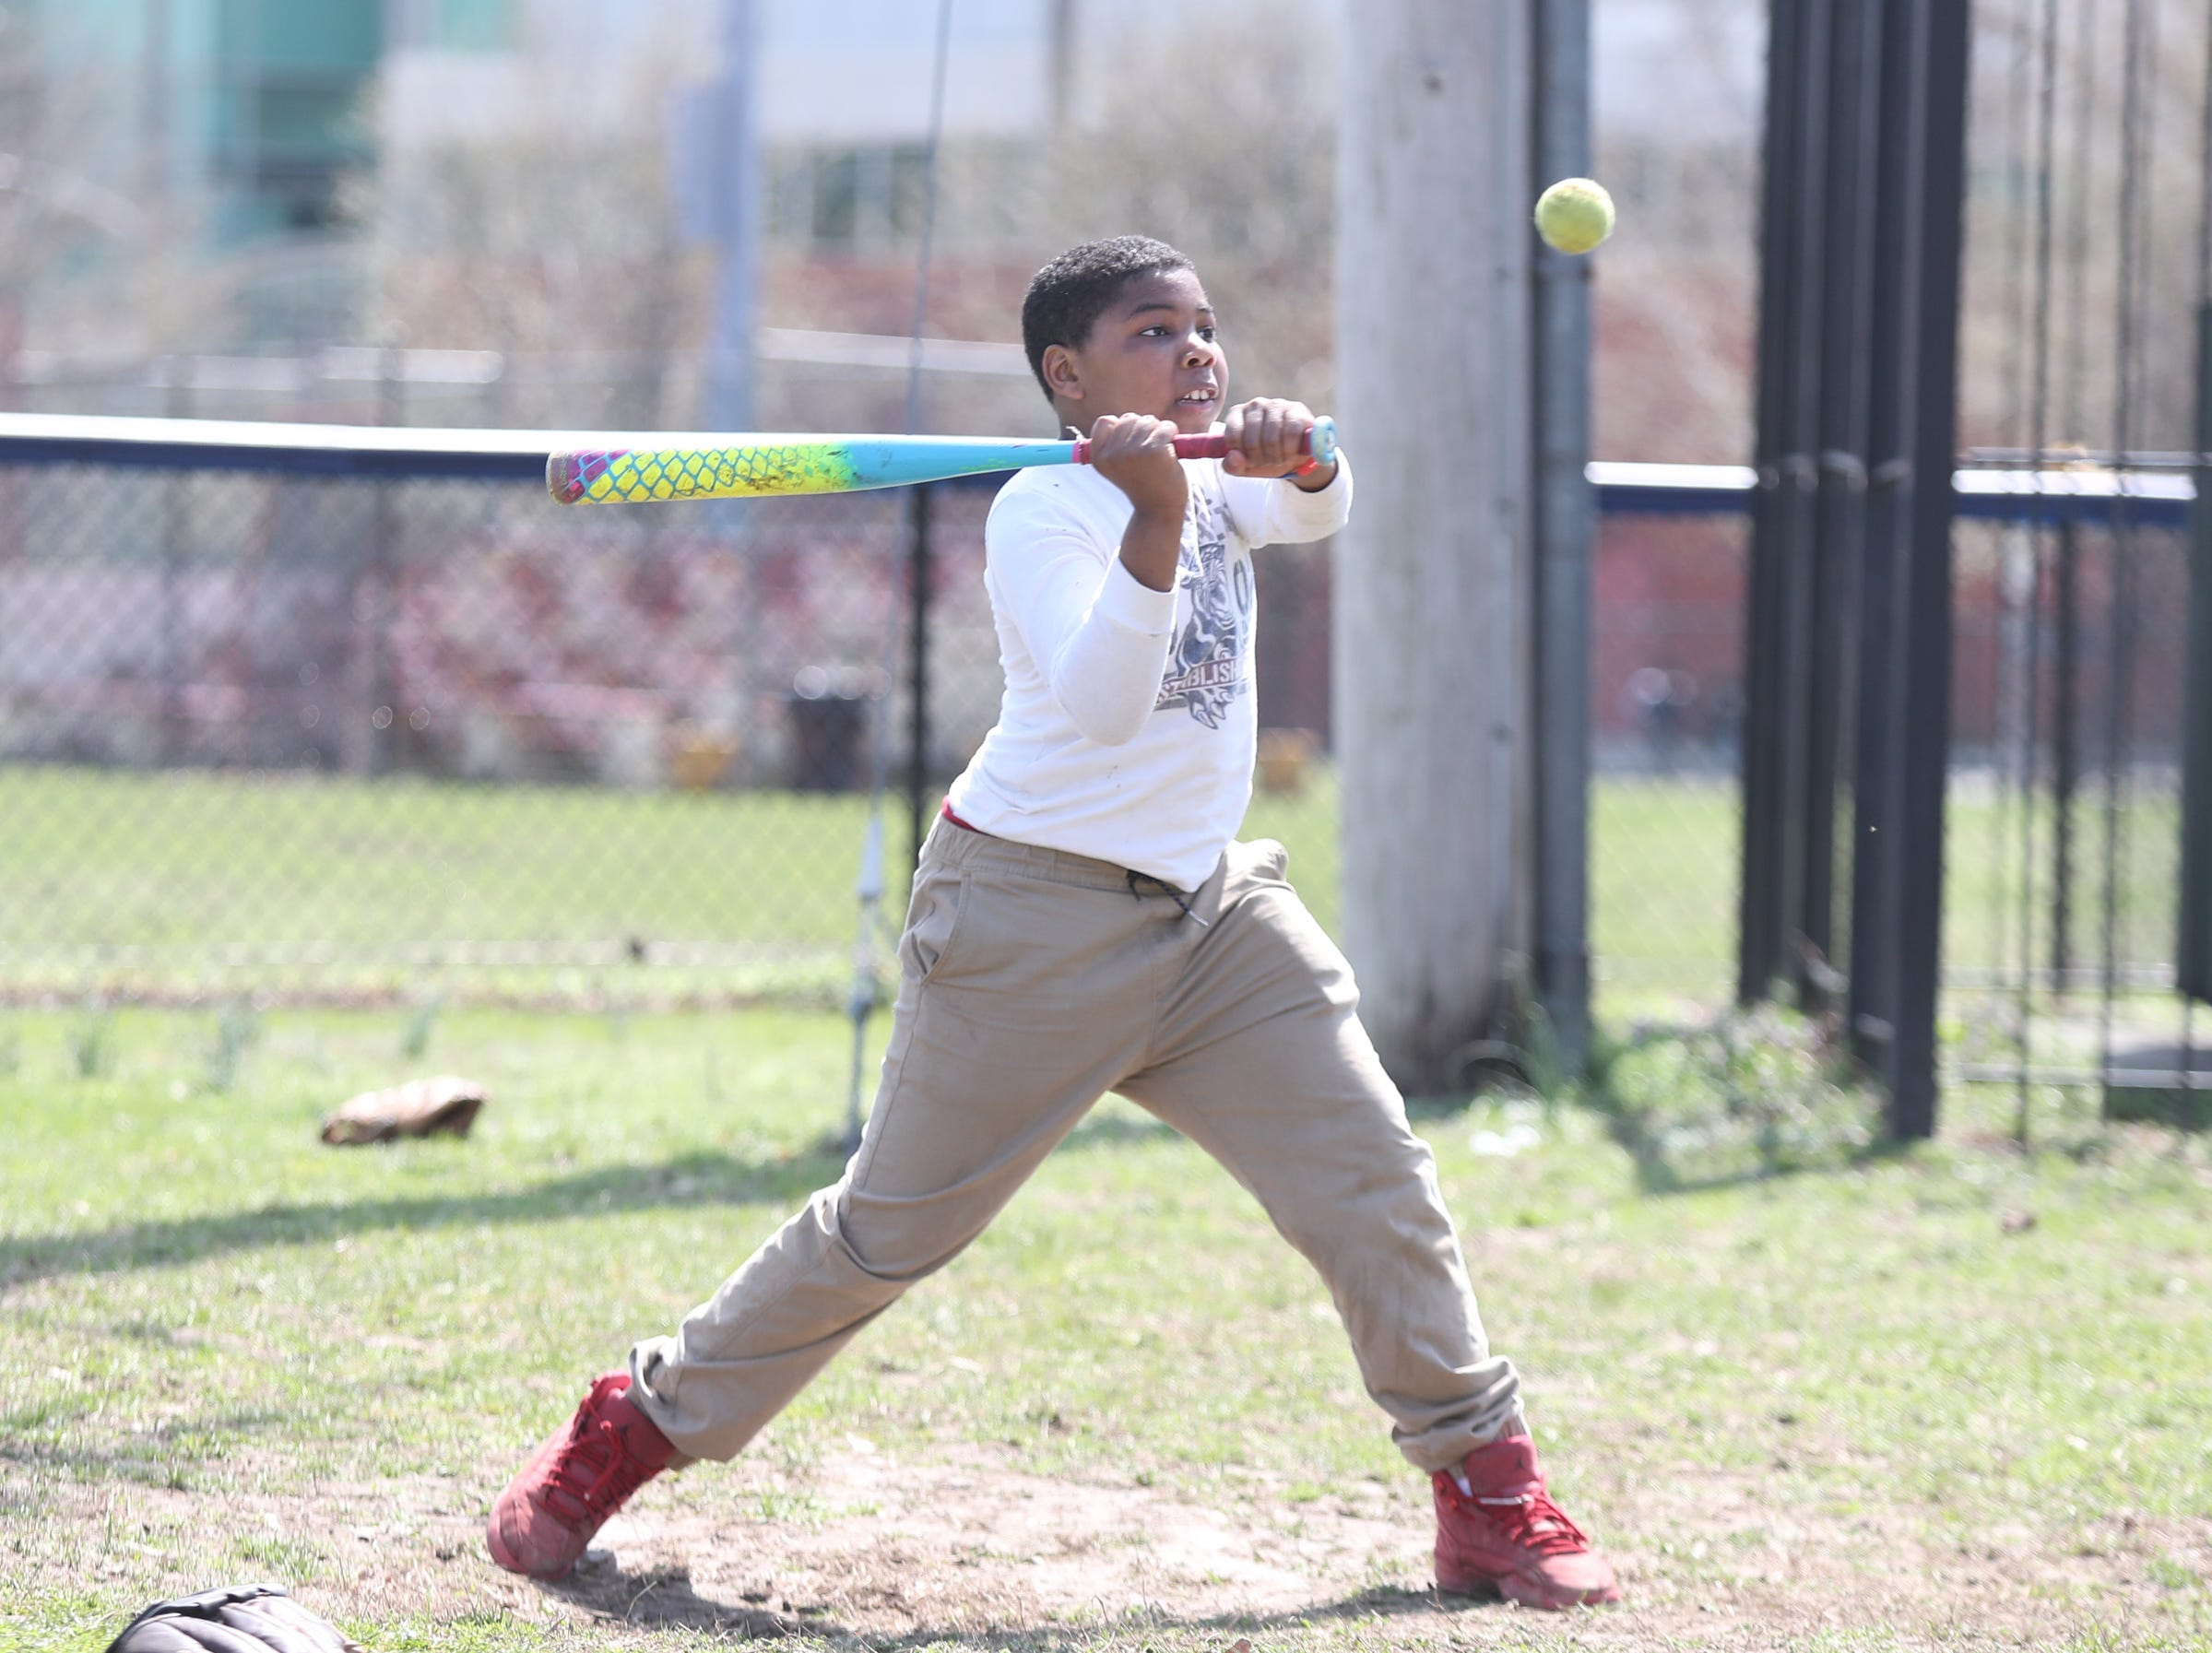 Tarik Shell, 11, takes a swing at a pitch during little league practice at Brush Park on Saturday, April 13, 2019 during Jackie Robinson Day in Mount Vernon.